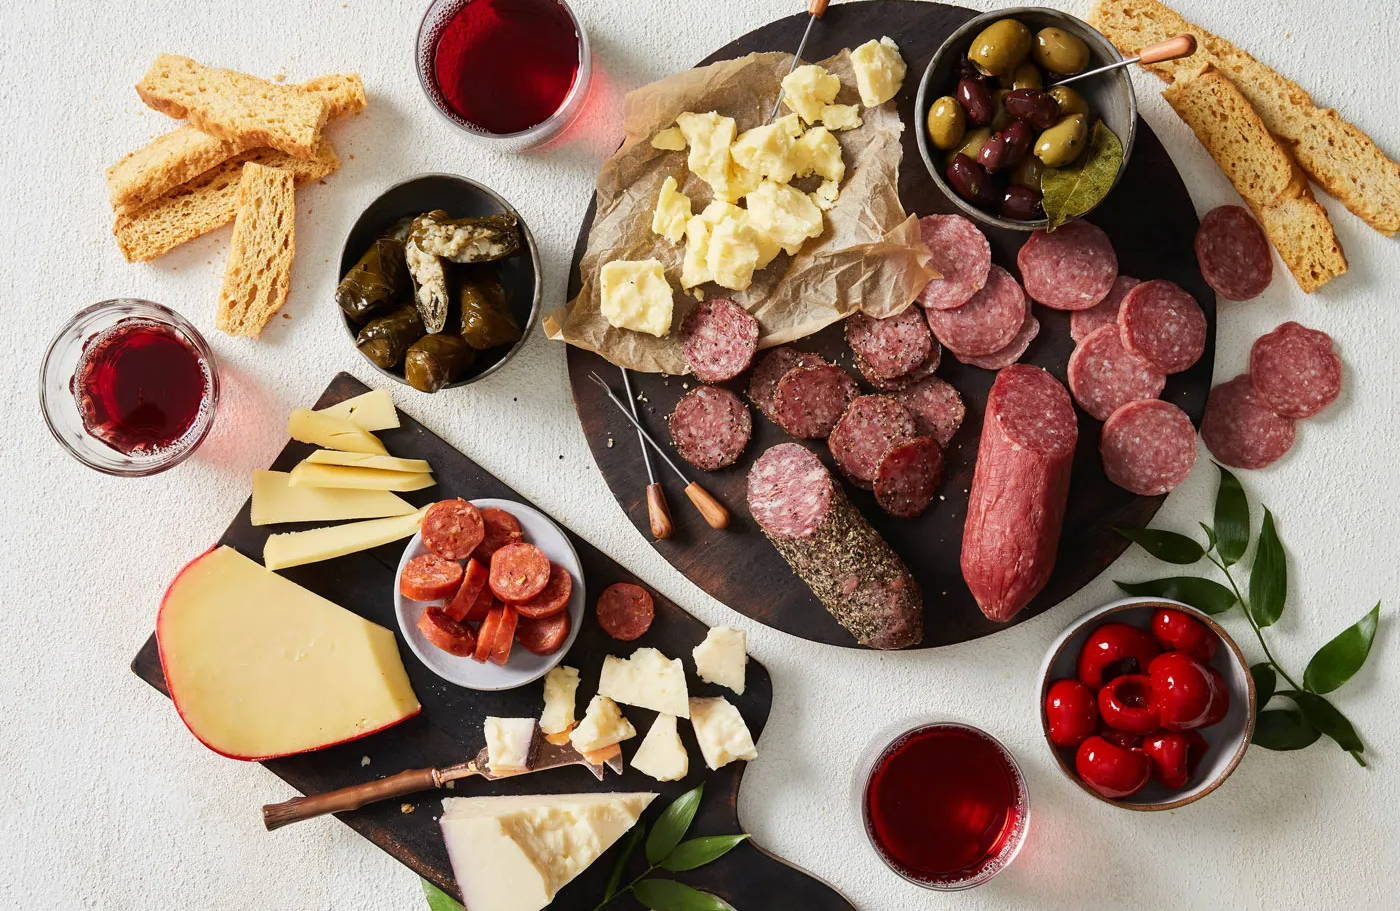 assorted charcuterie items